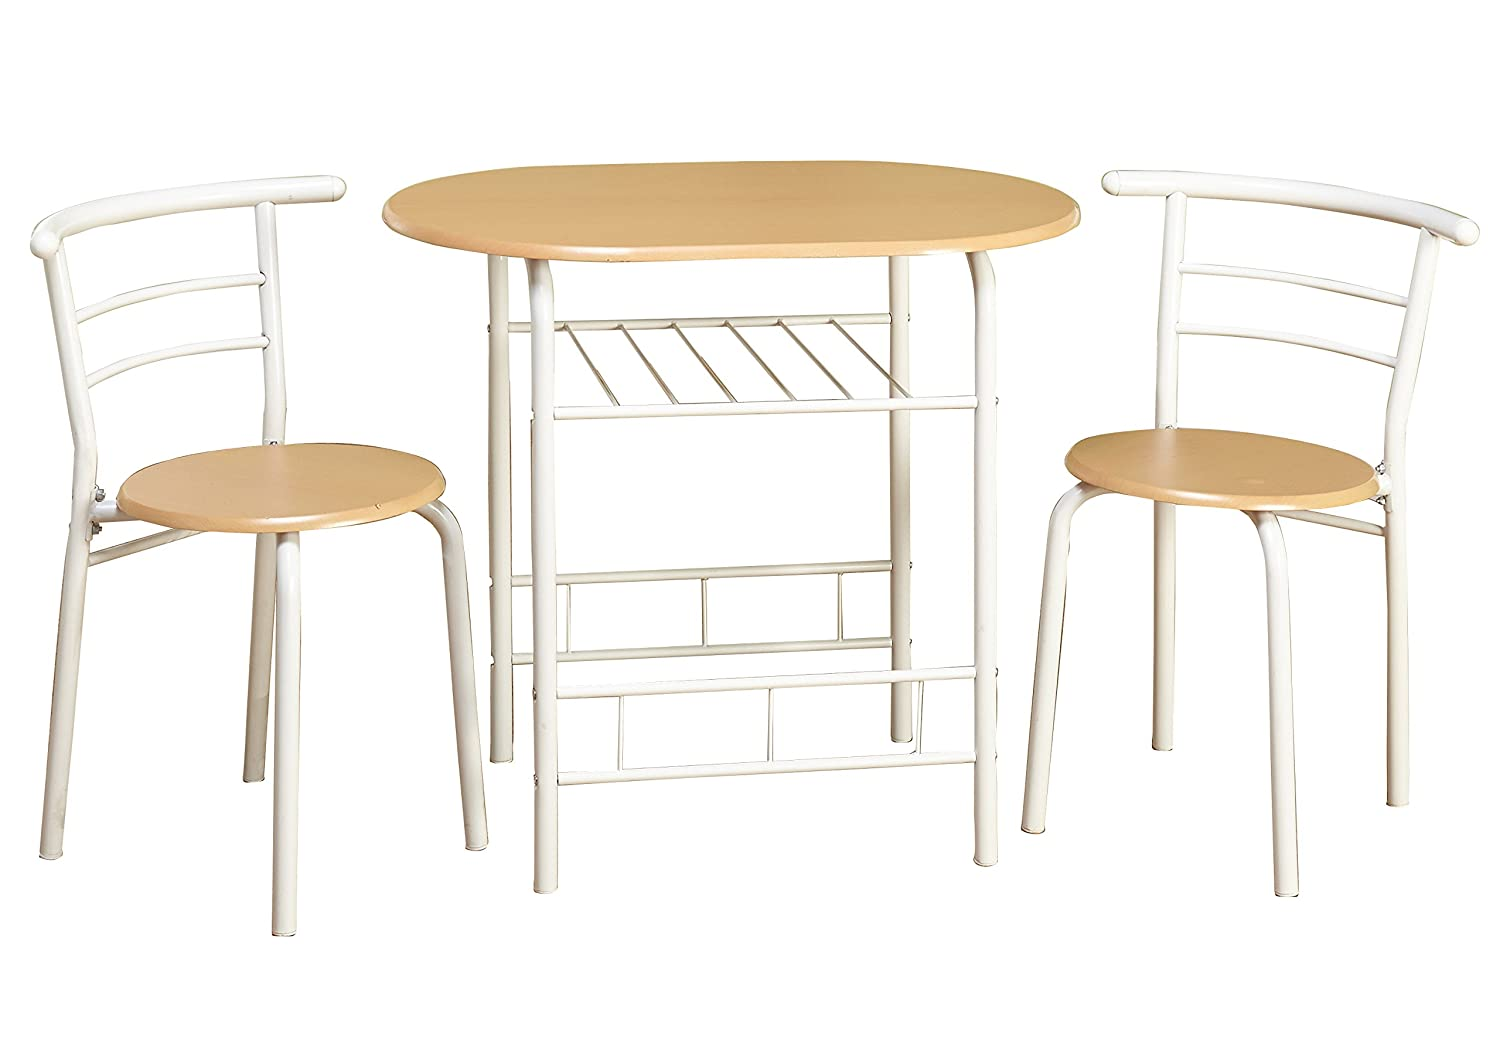 Target Marketing Systems 3 Piece Two-TonedBistro Dining Set with 2 Mid-Back Chairs and 1 Round Pedestal Dining Table, White/Natural